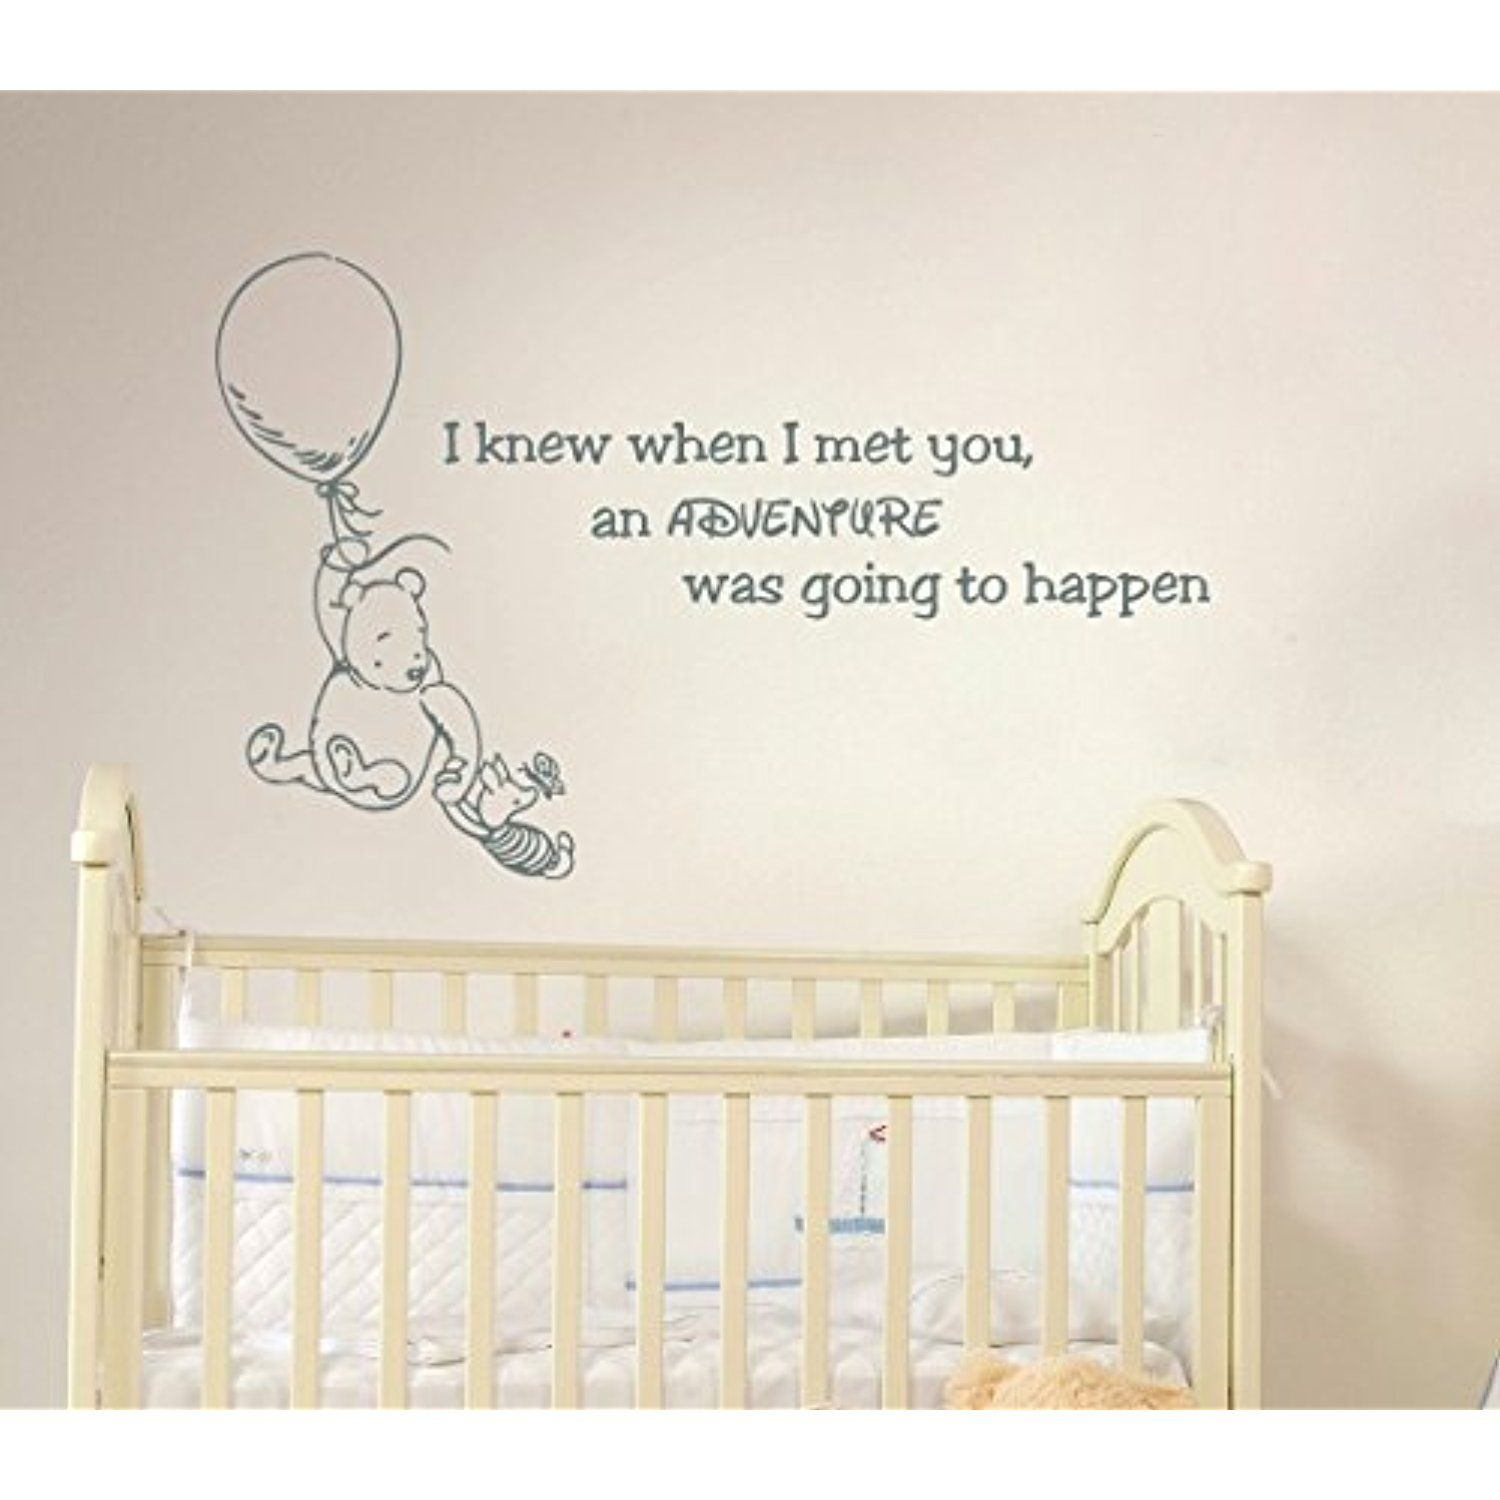 Winnie the pooh quote wall decal vinyl sticker decals quotes winnie the pooh quote wall decal vinyl sticker decals quotes adventure wall decal quote wall decor amipublicfo Images